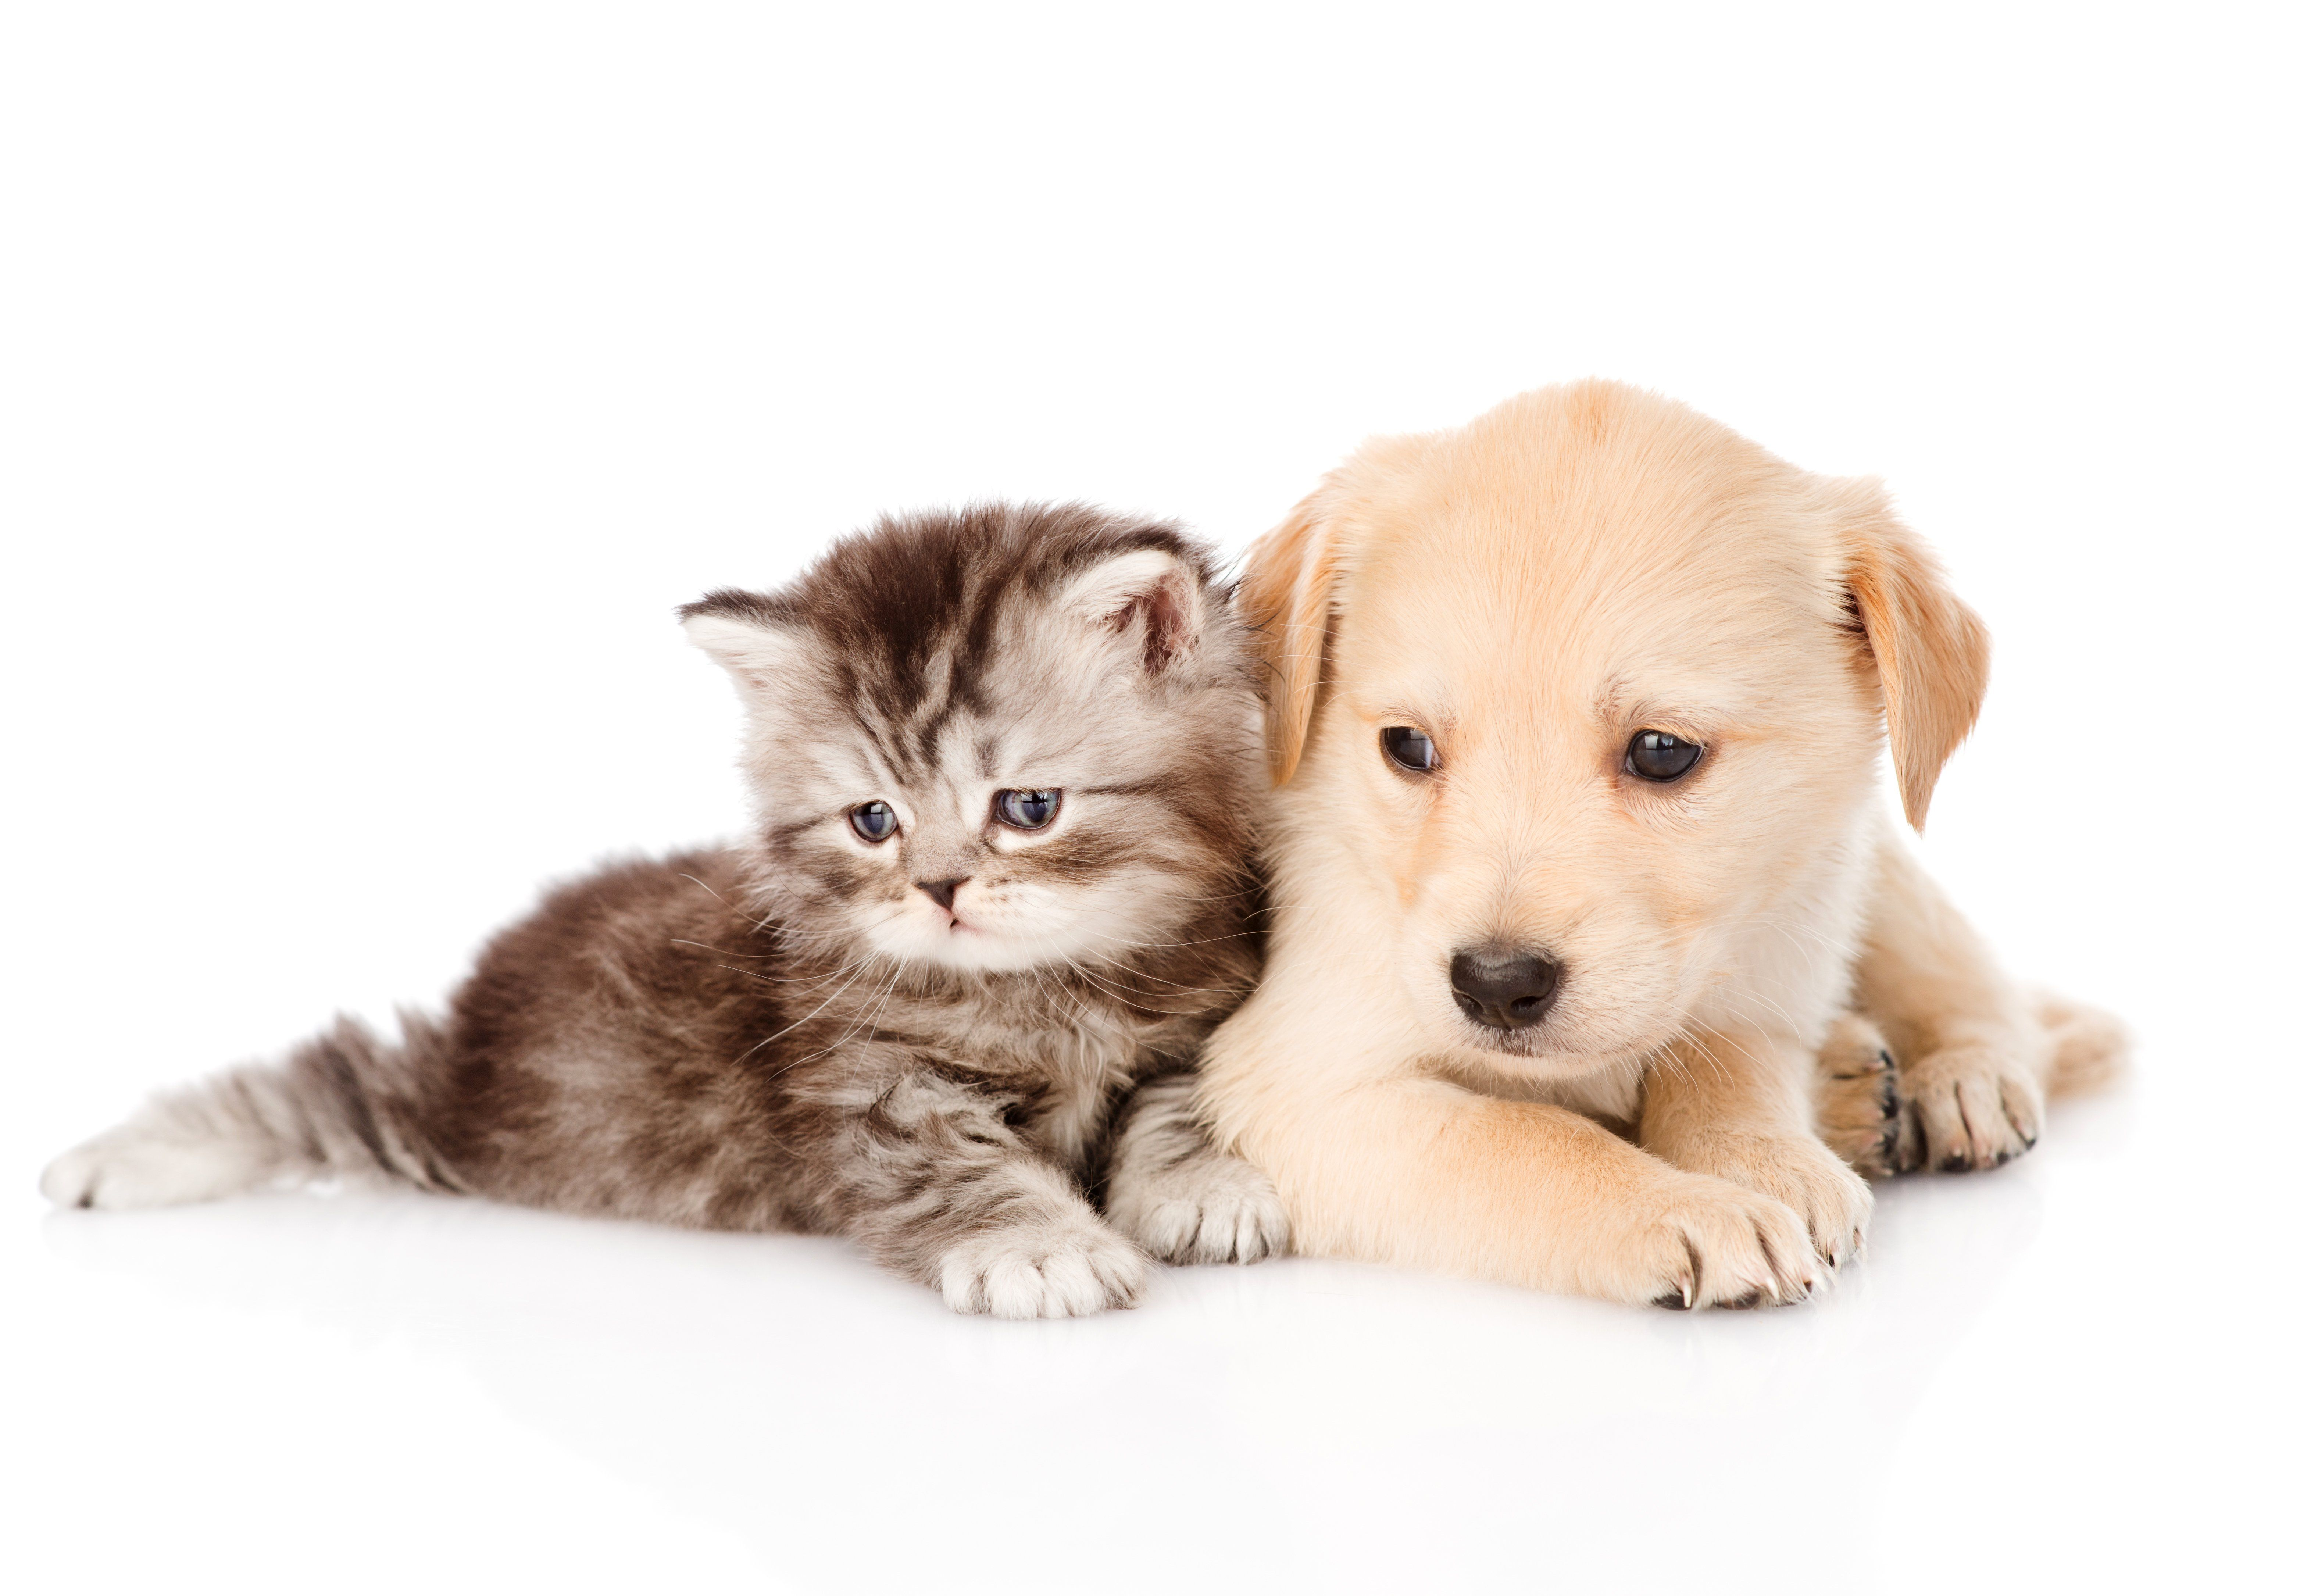 Dog And Cat Wallpaper Download Cute Cats And Dogs Kittens Cutest Kittens And Puppies